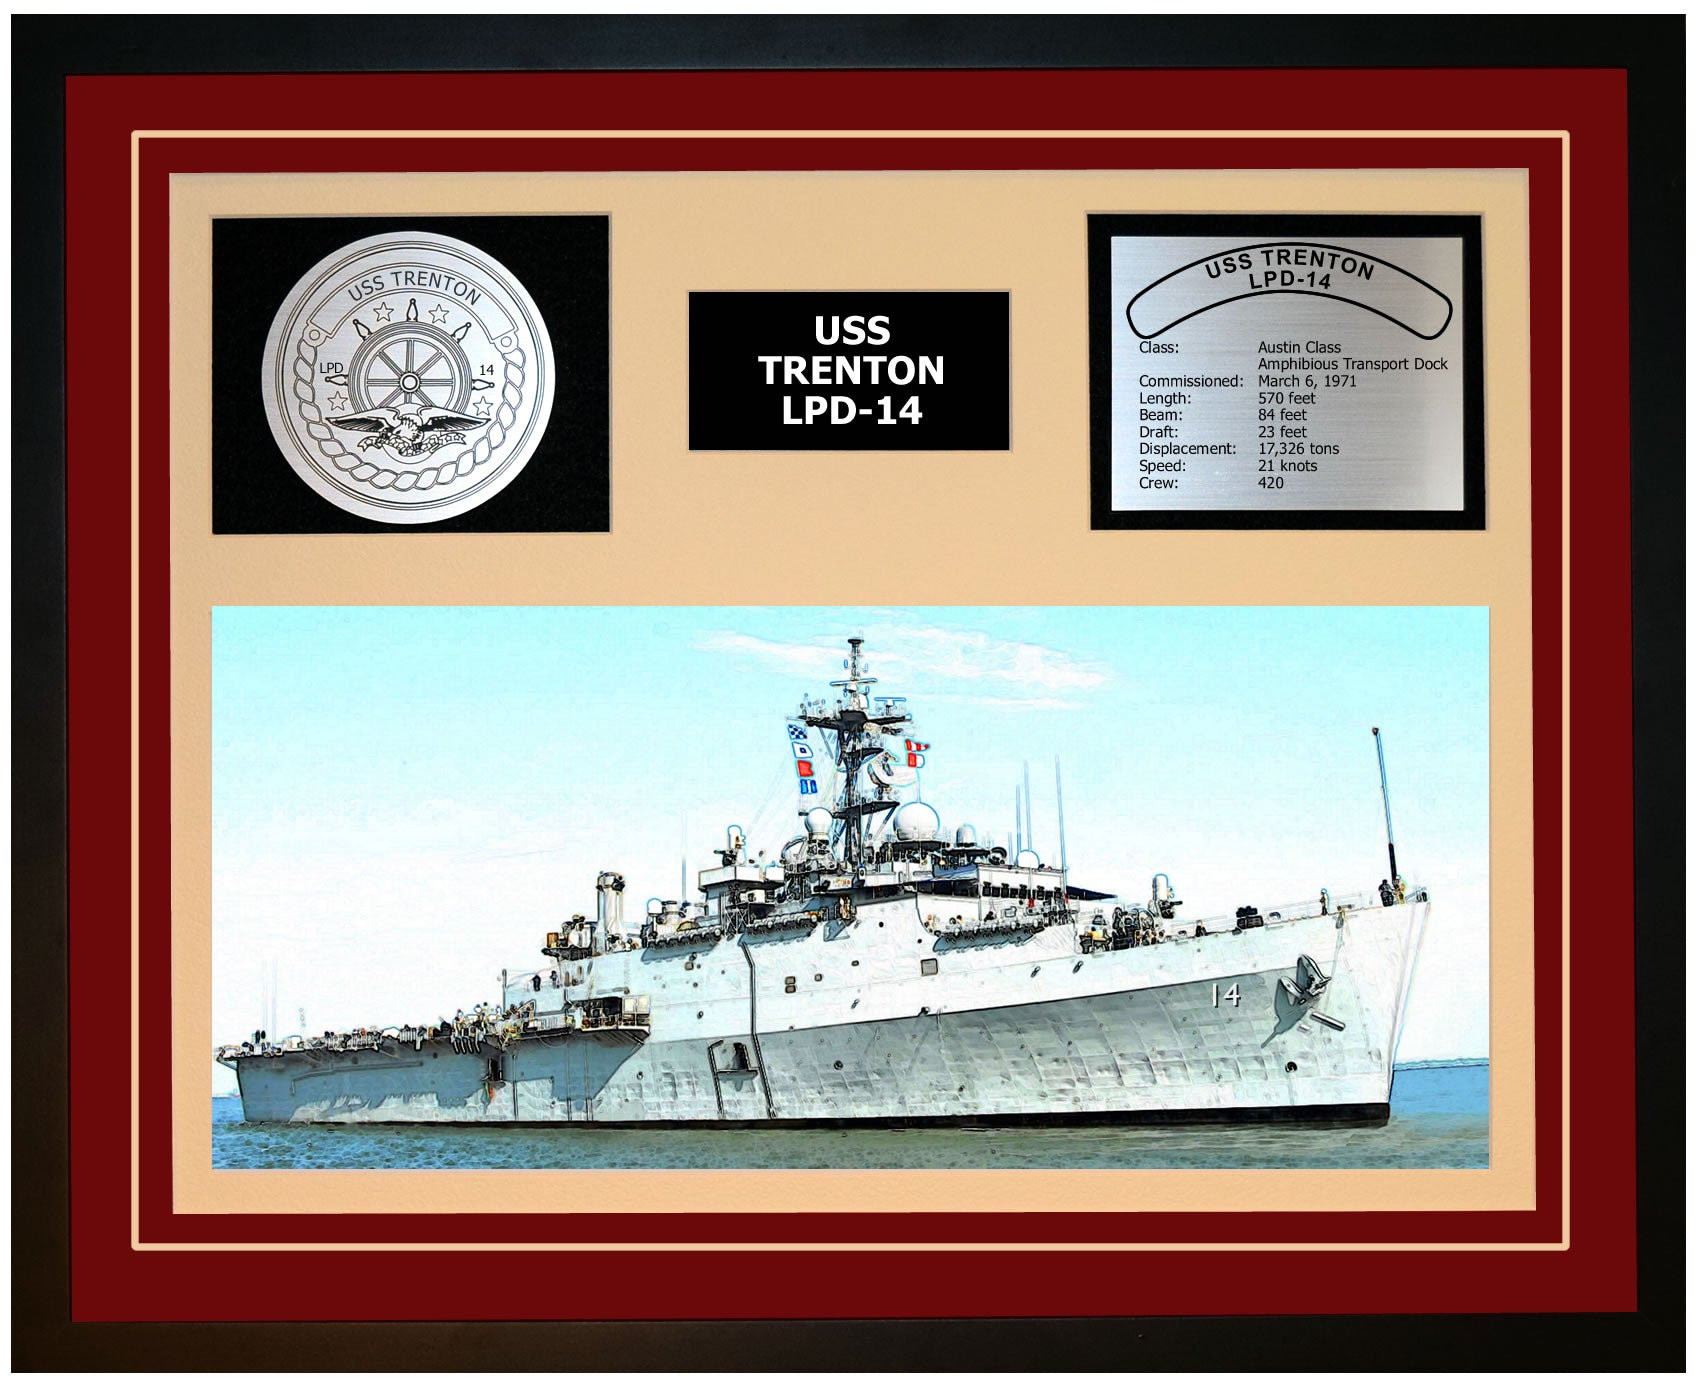 USS TRENTON LPD-14 Framed Navy Ship Display Burgundy